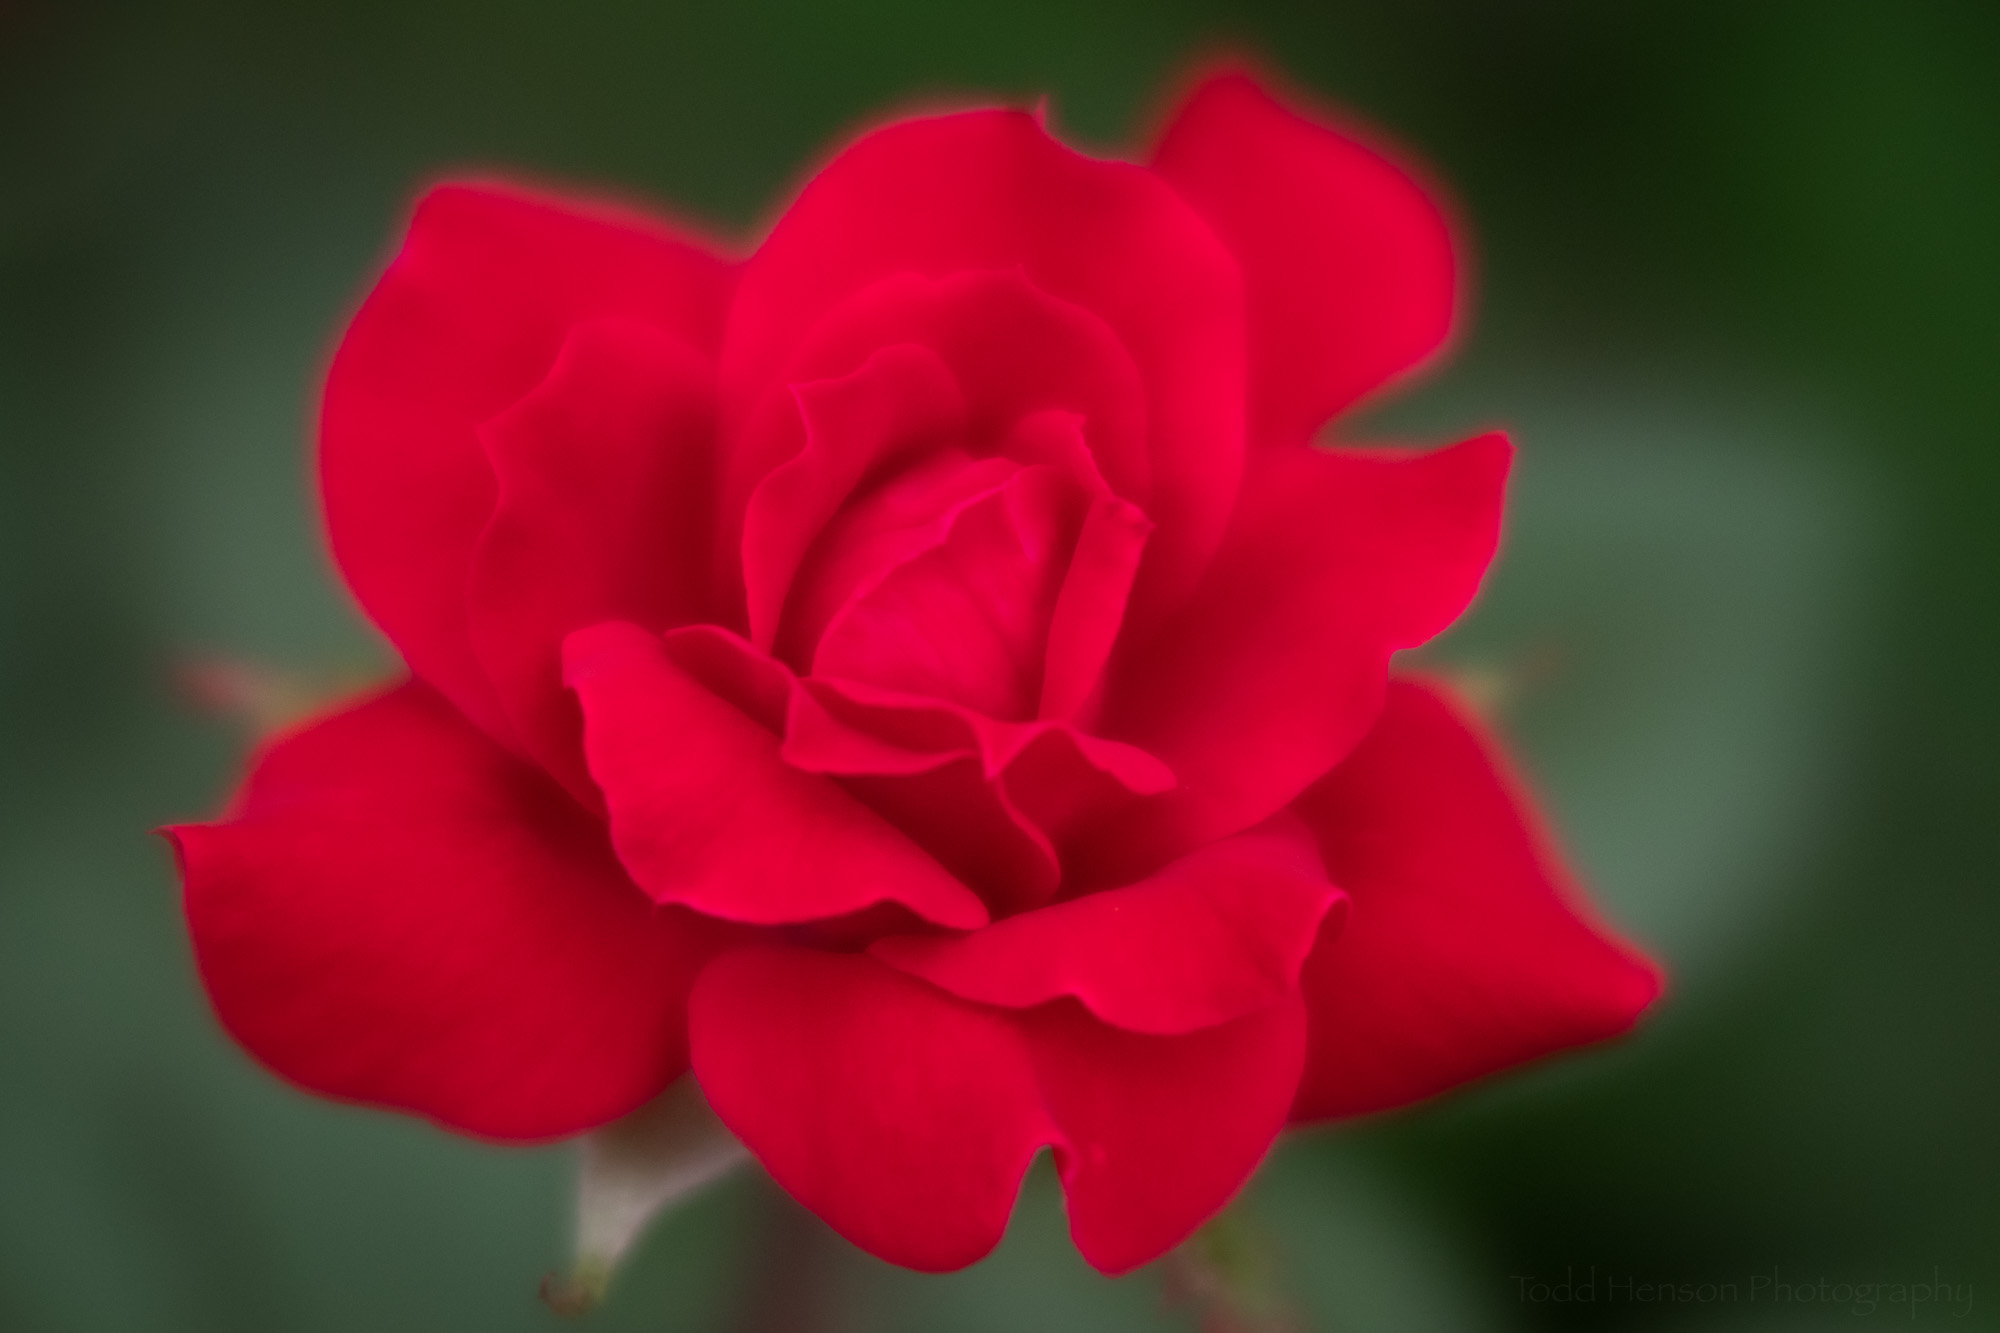 A red rose photographed with the Lensbaby Velvet 56 using a larger aperture to increase the soft, ethereal look.